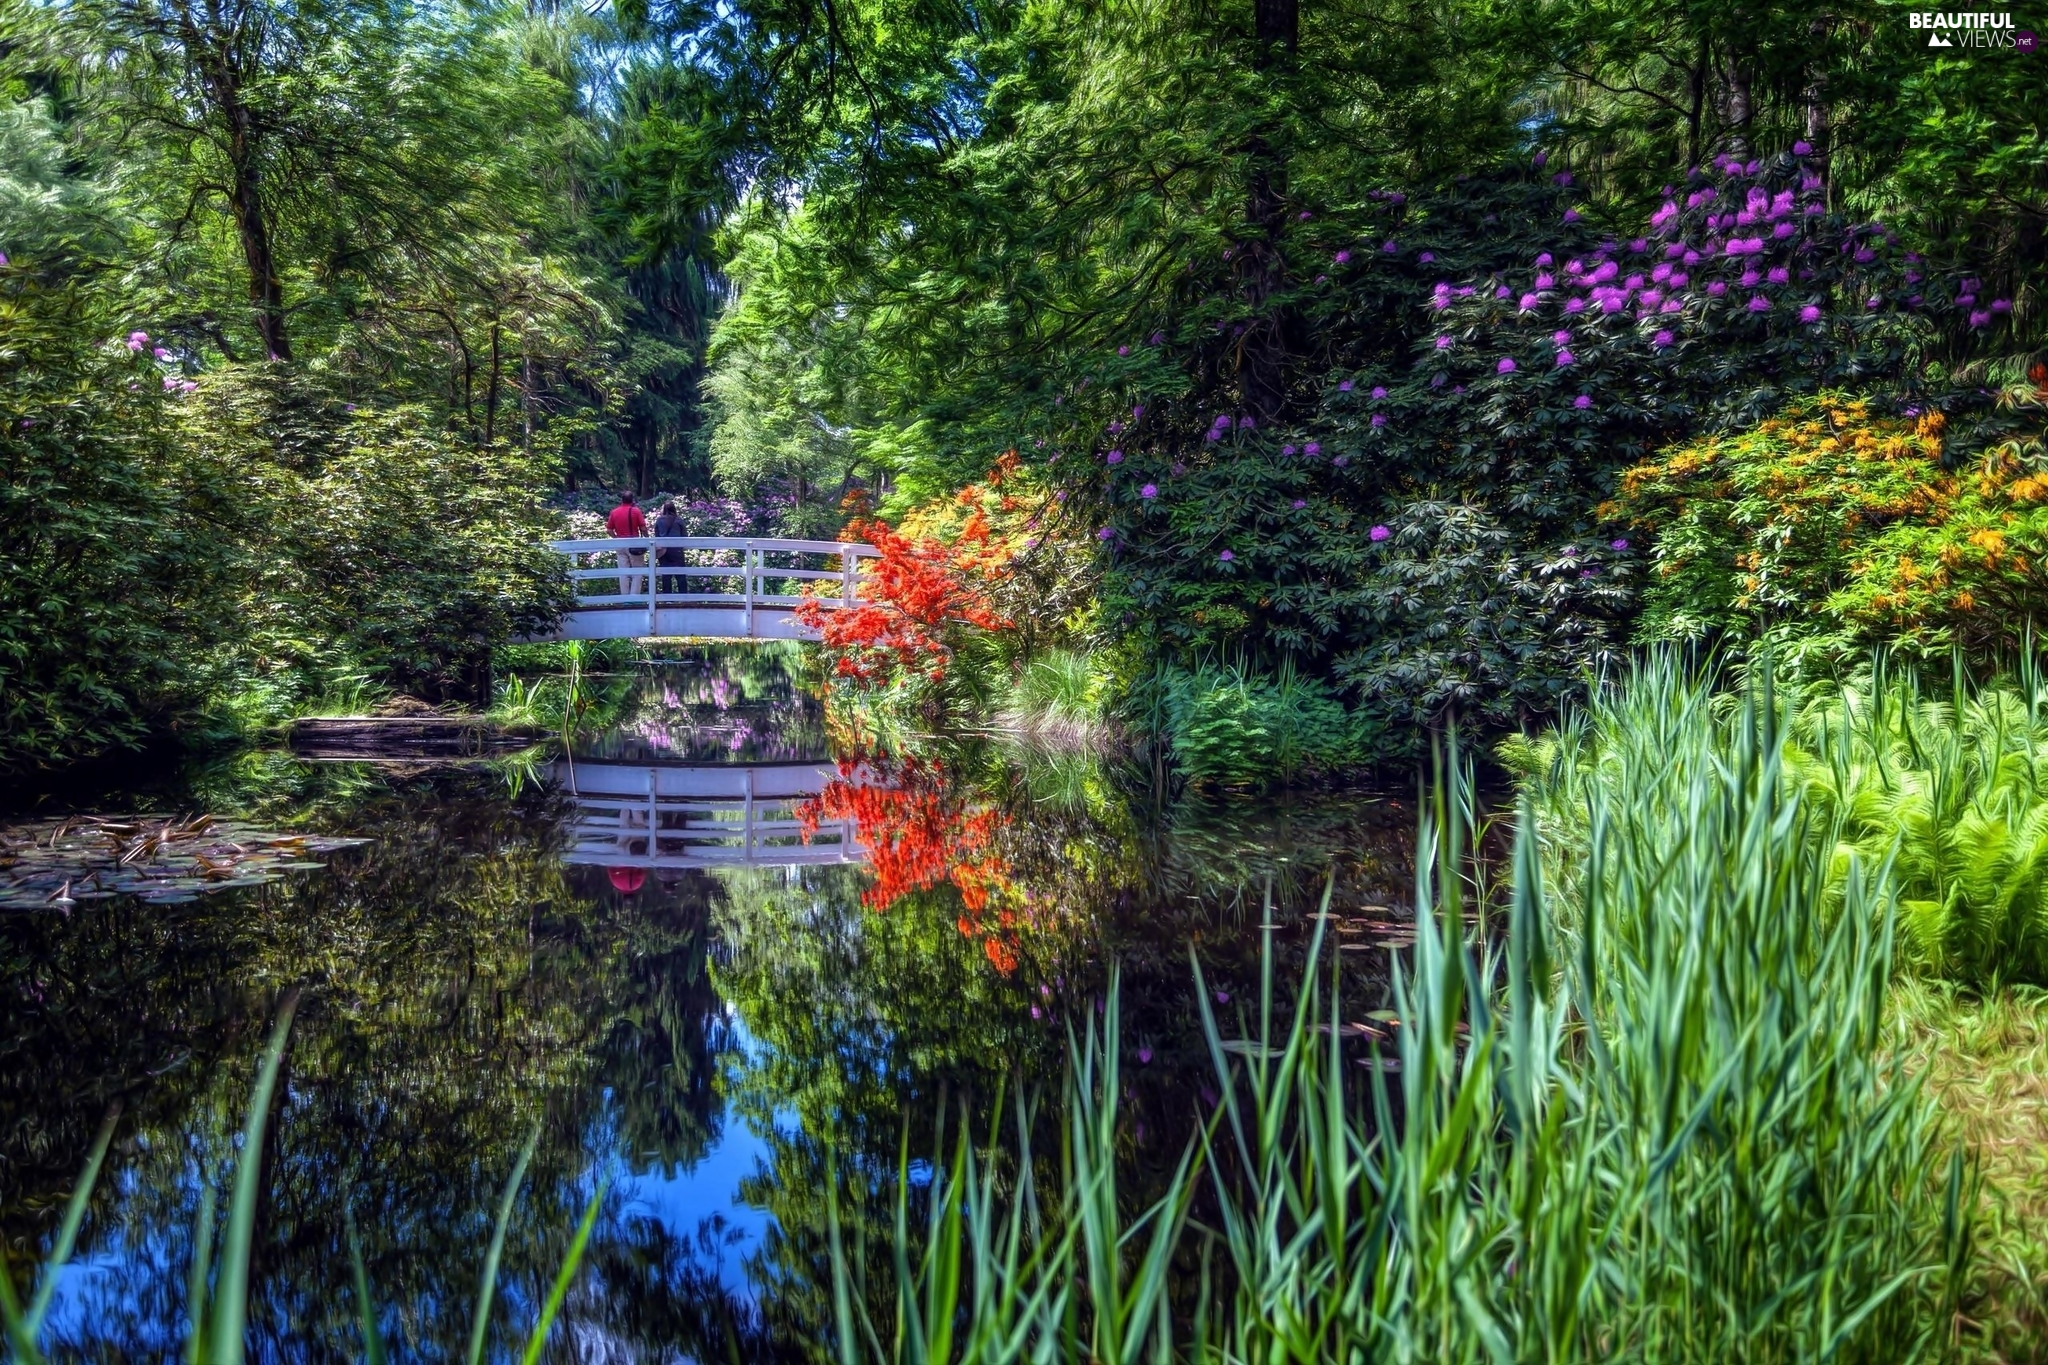 Pond - car, Park, bridge, trees, grass, Spring, Bush, Rhododendron, viewes